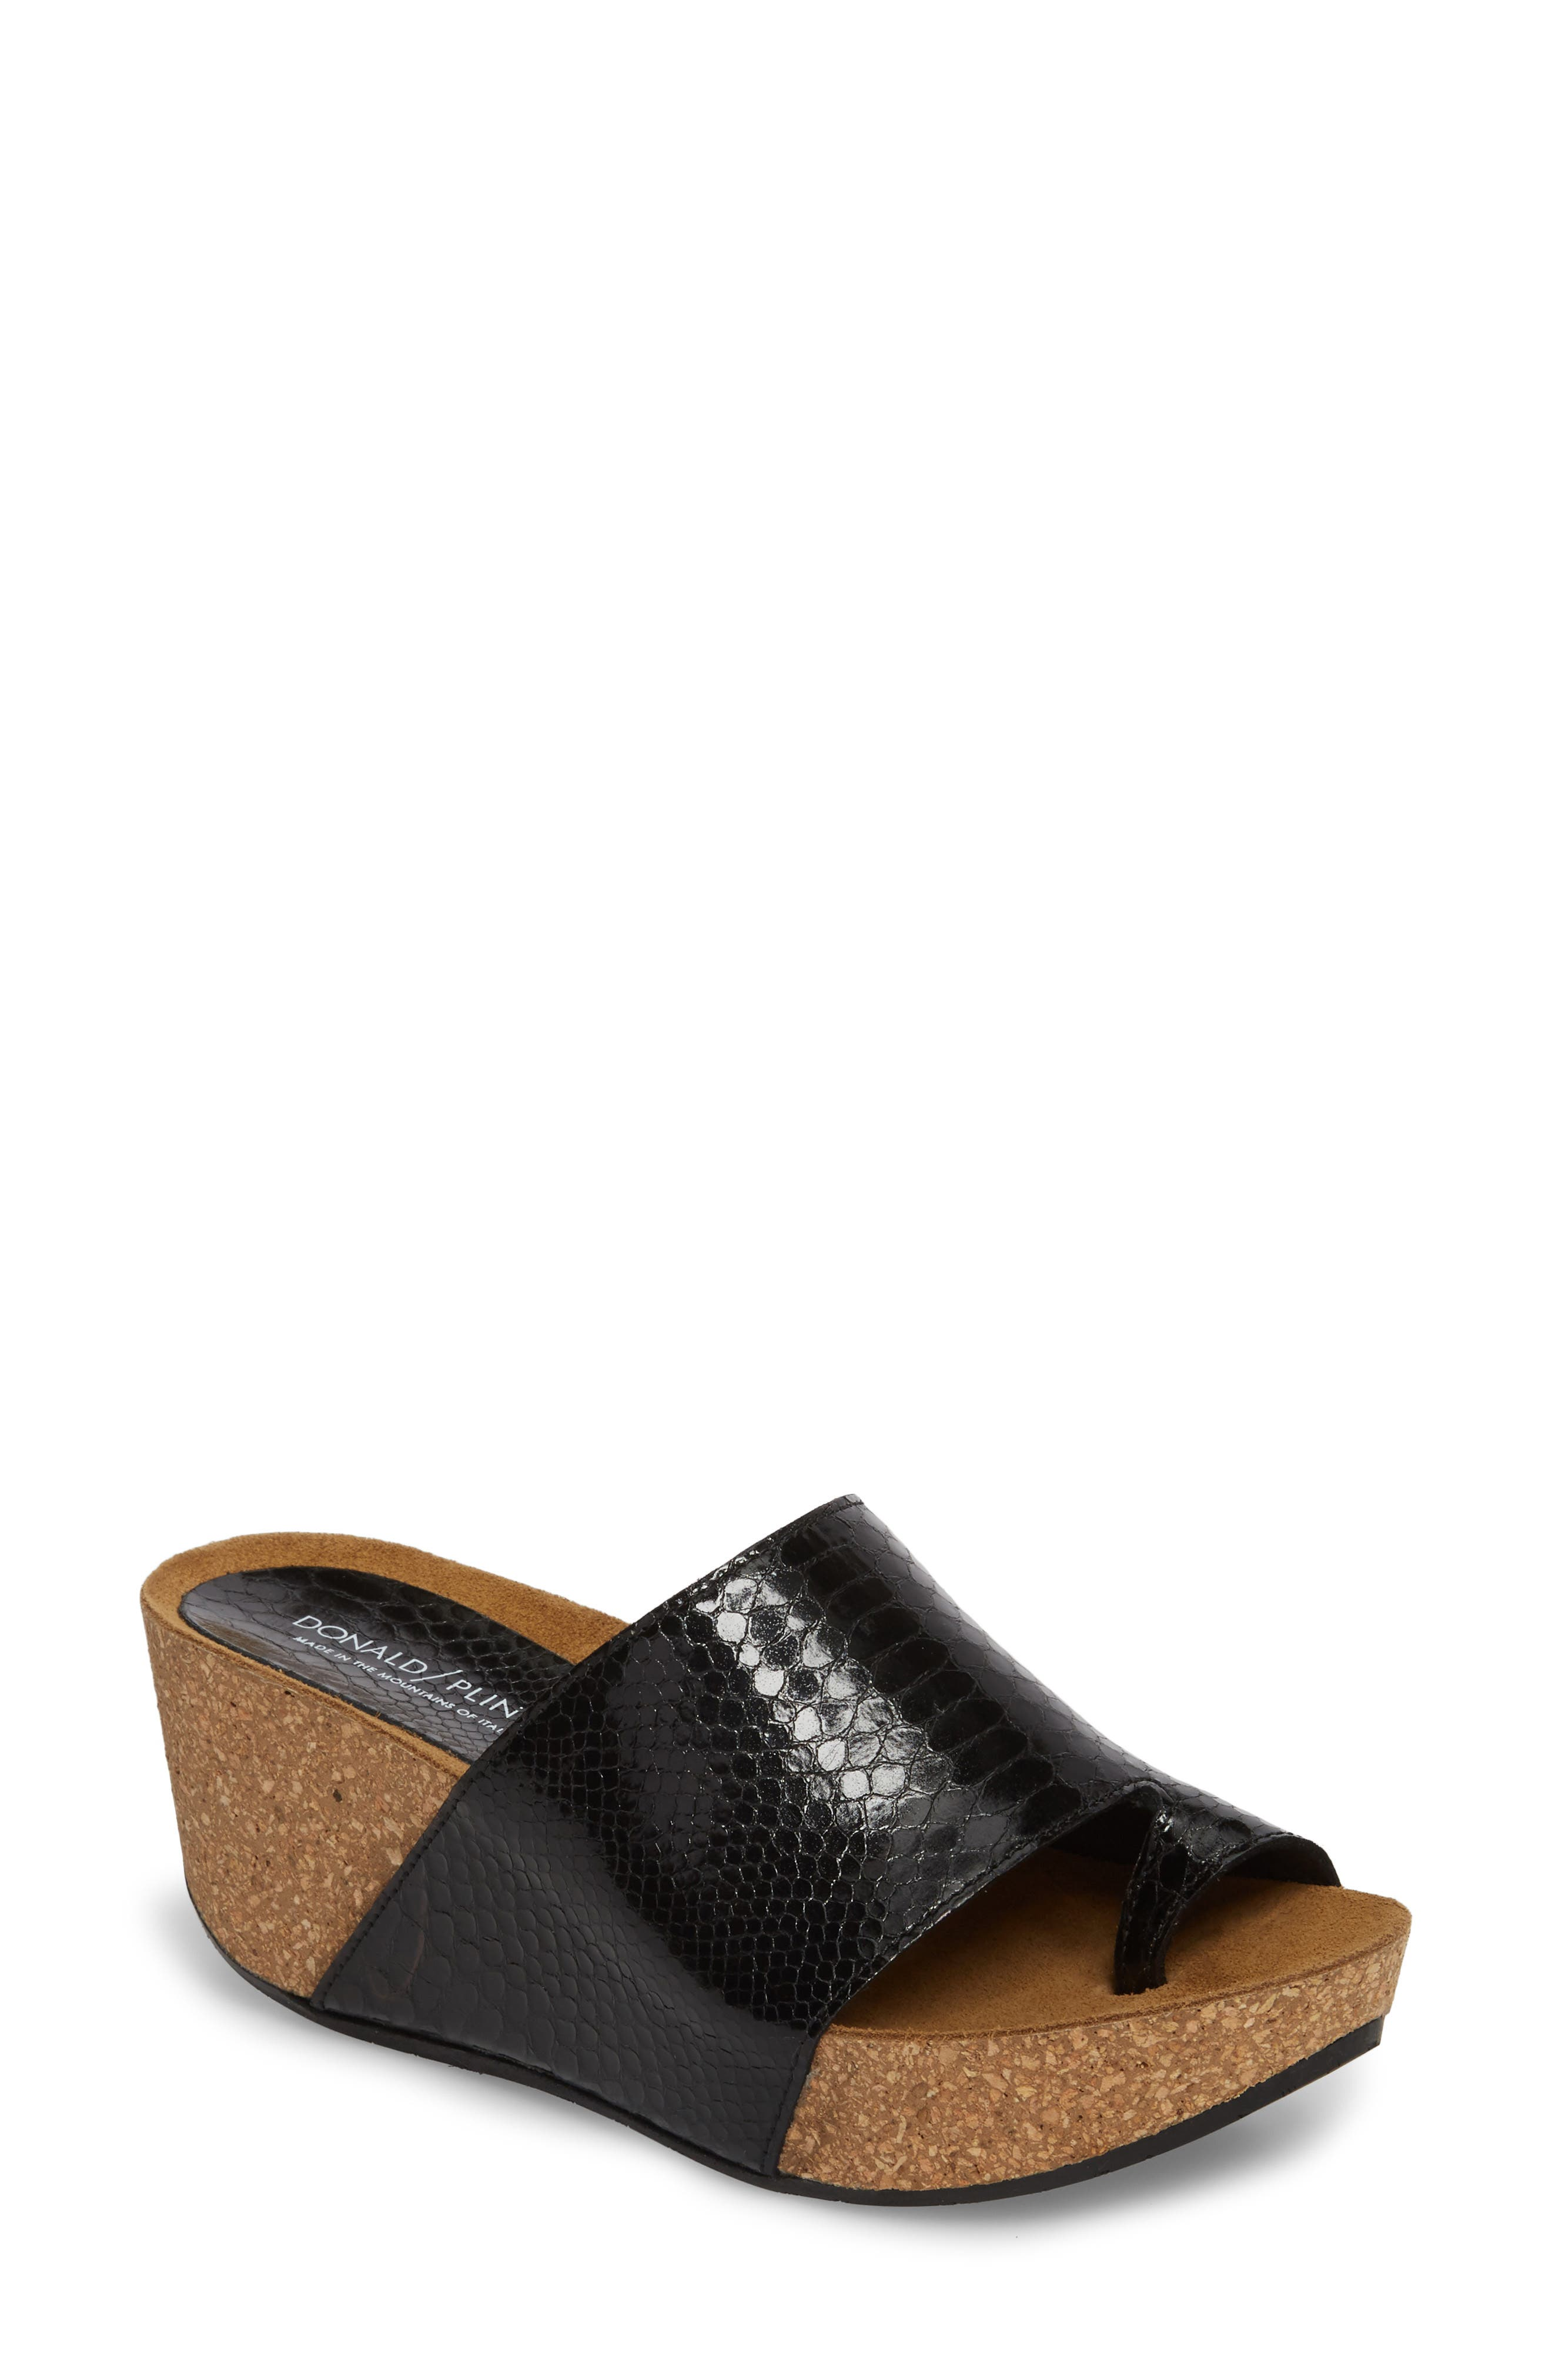 Donald J Pliner Ginie Platform Wedge Sandal,                         Main,                         color,